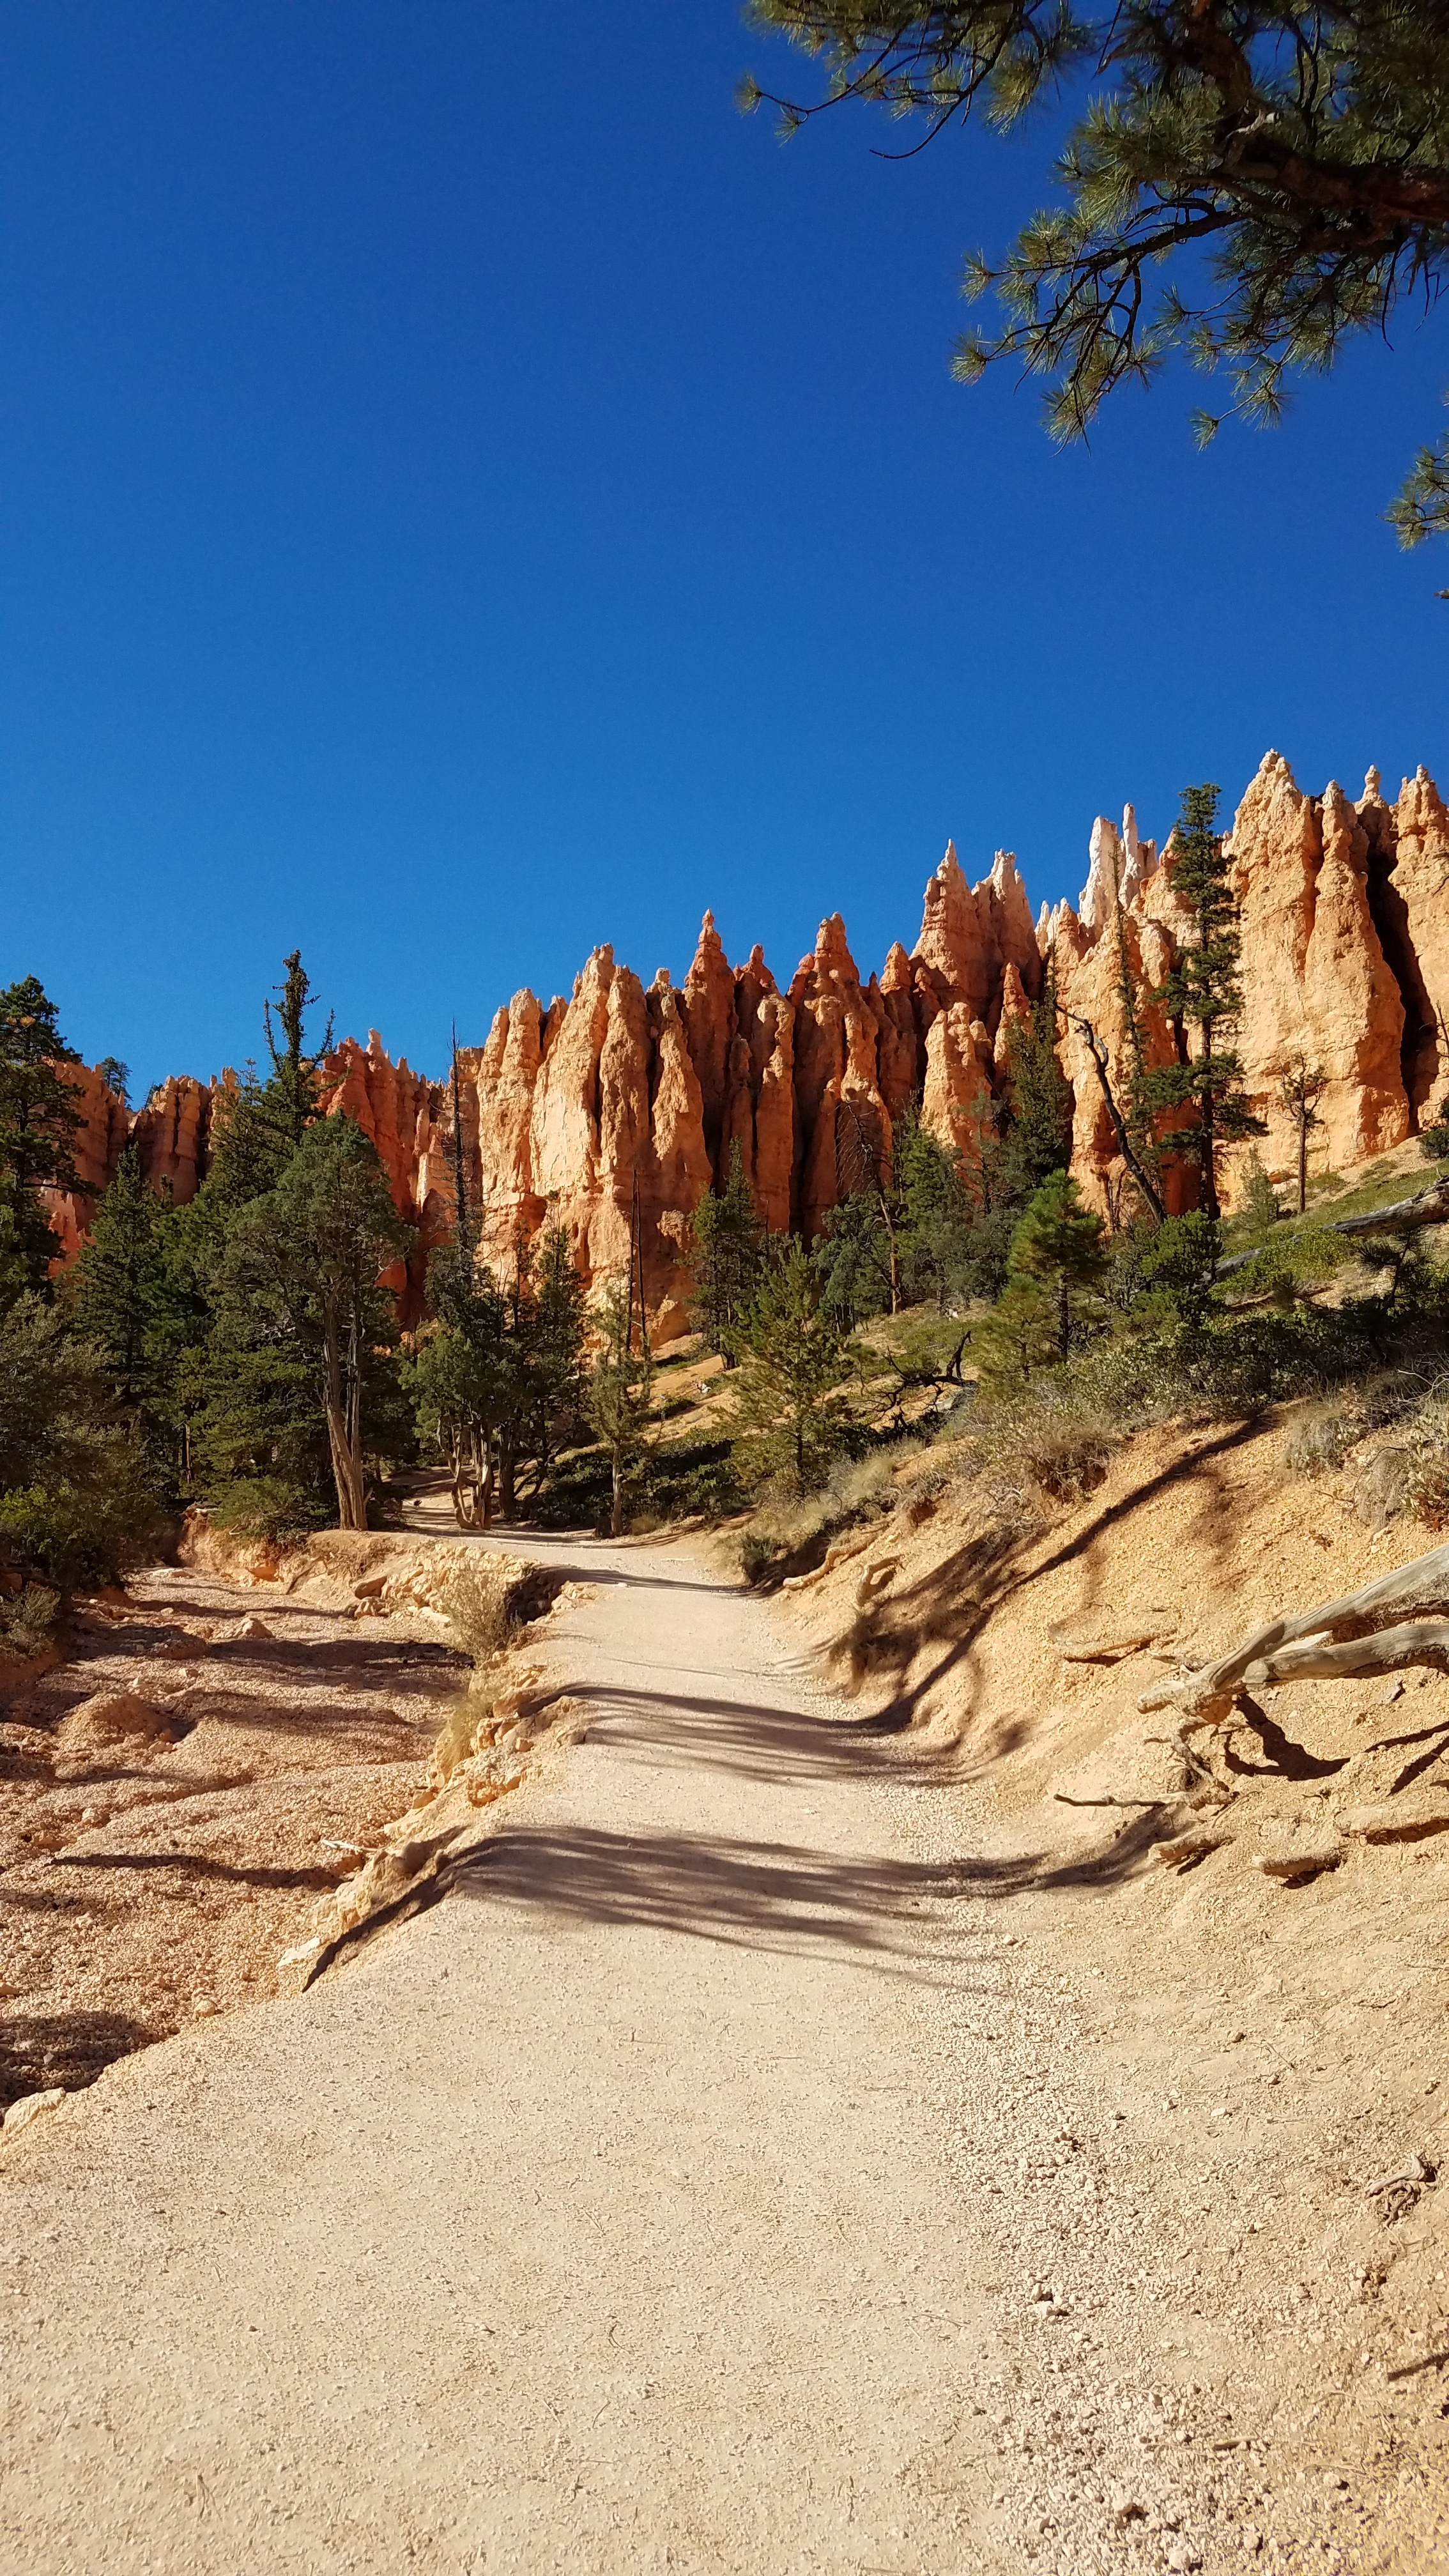 Hiking in the hoodoos at Bryce Canyon National Park, UT